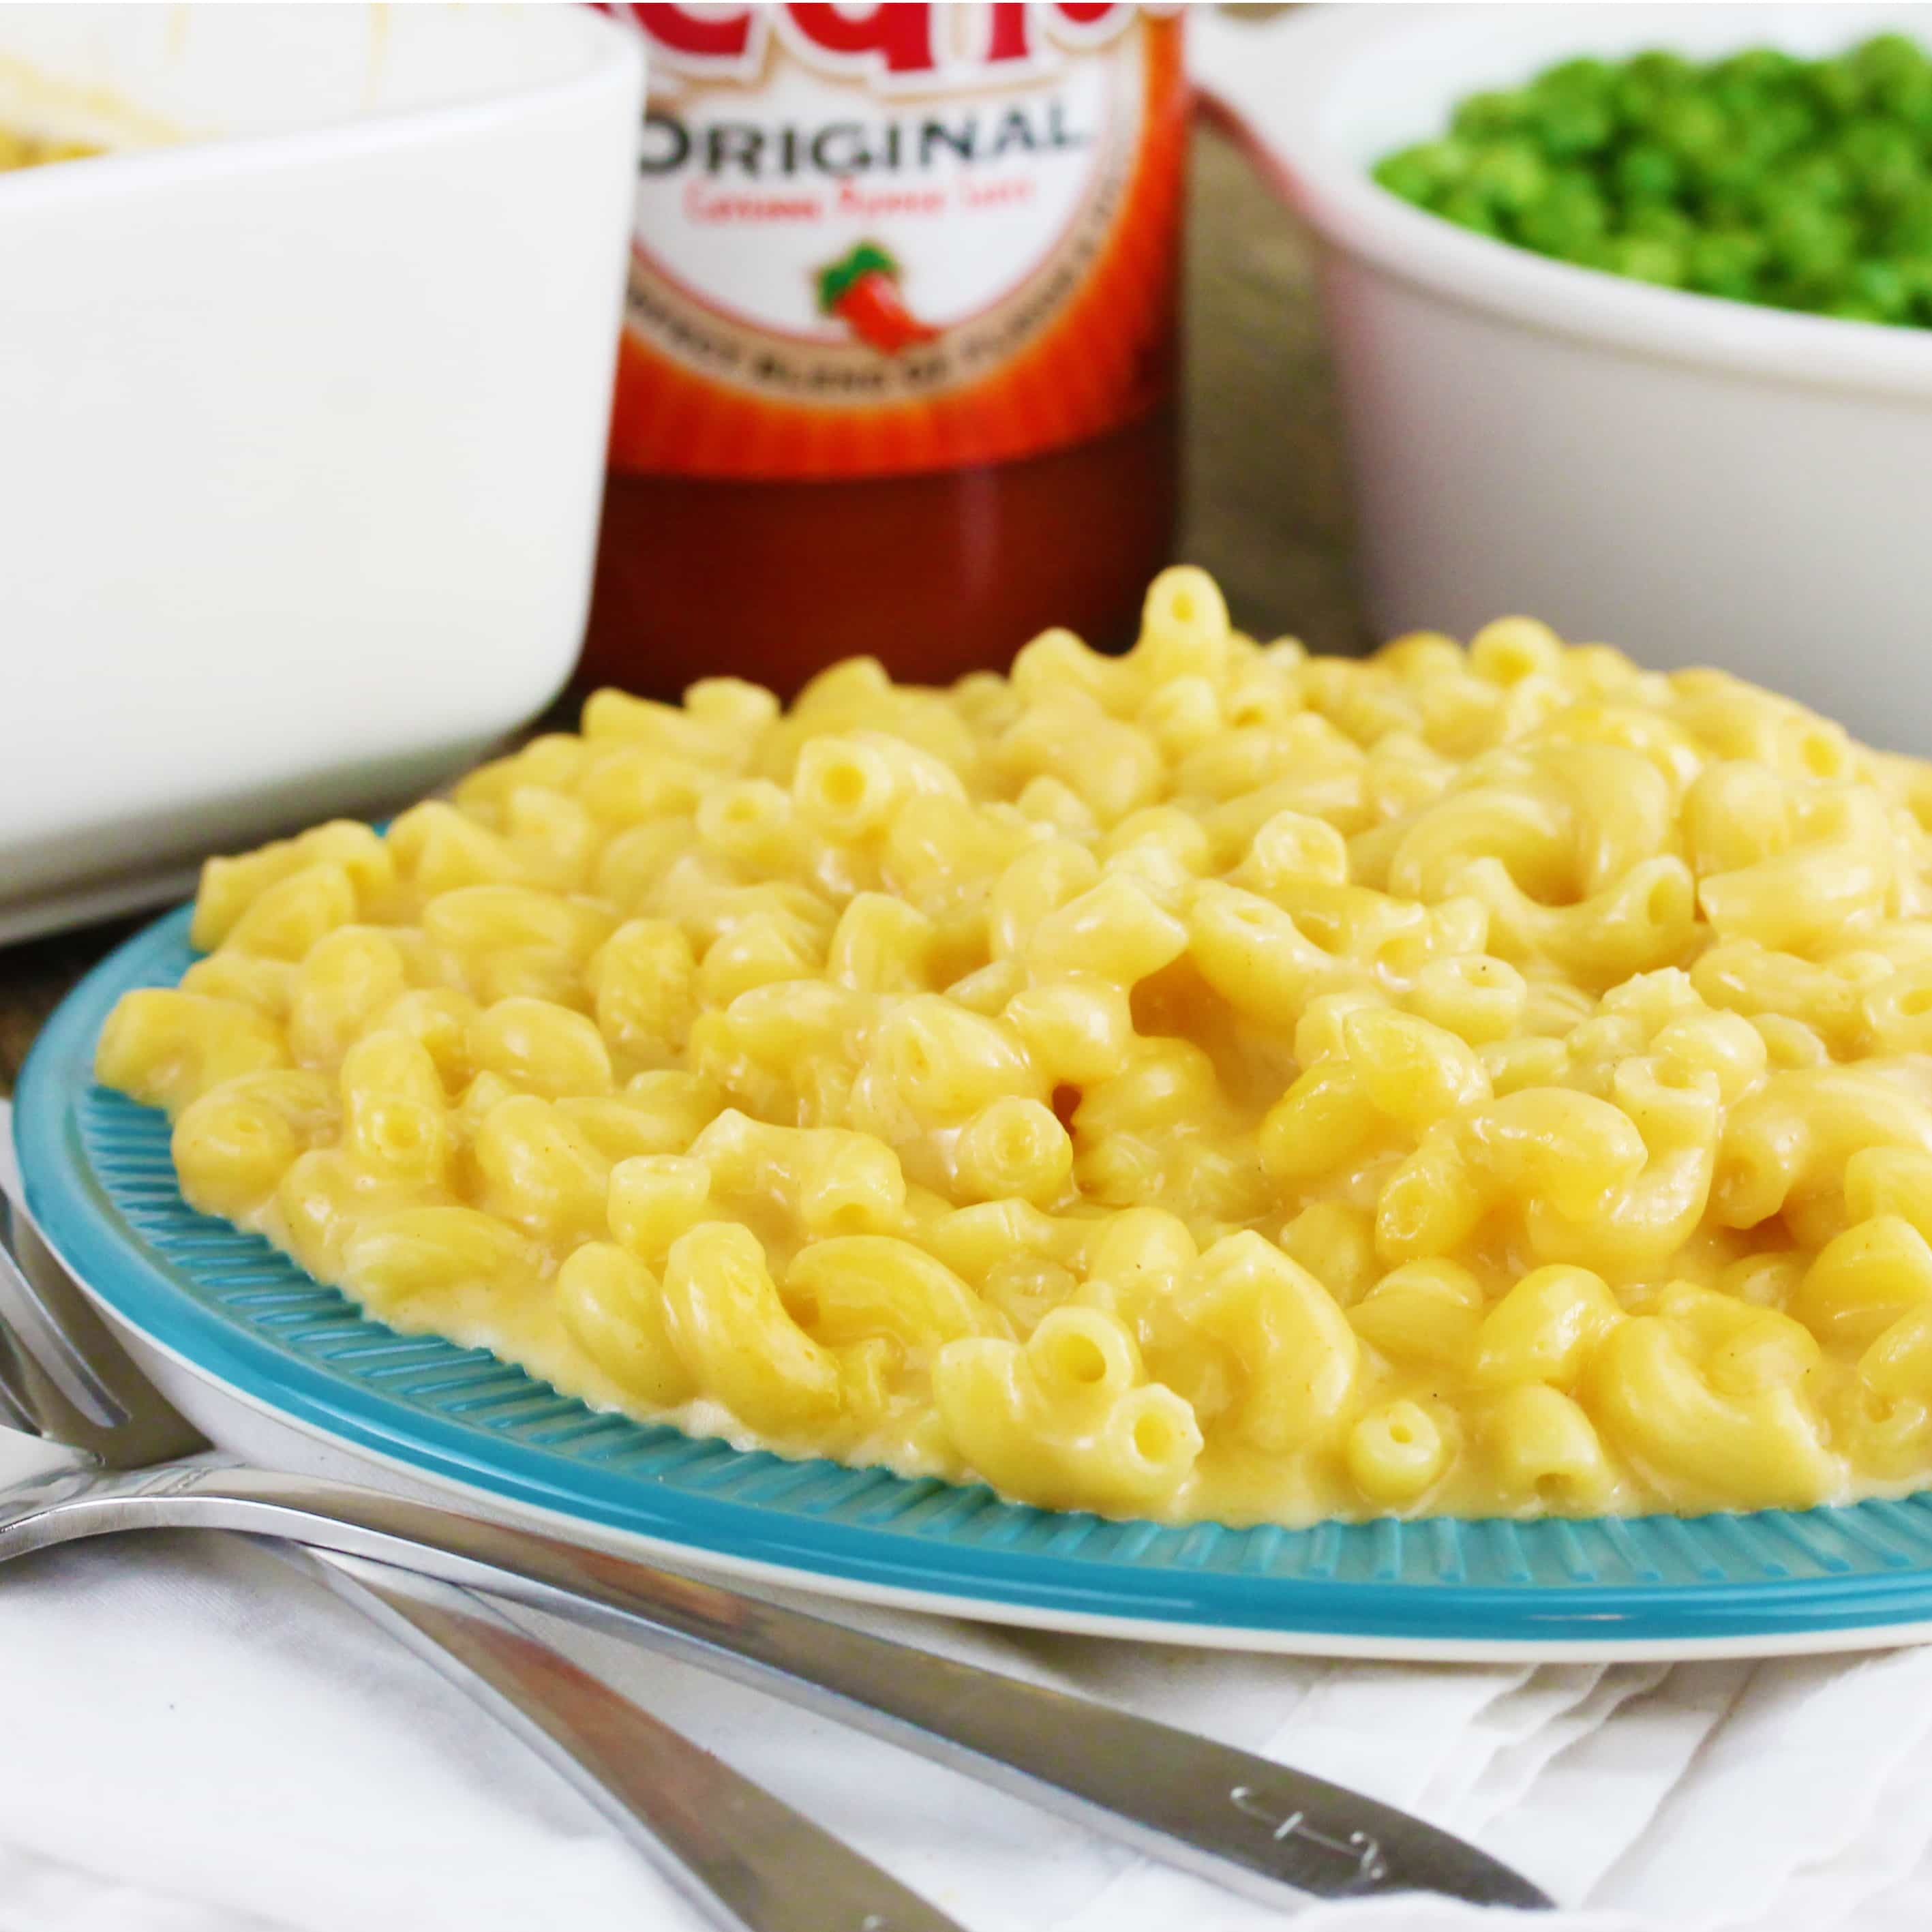 How to make macaroni and cheese nz